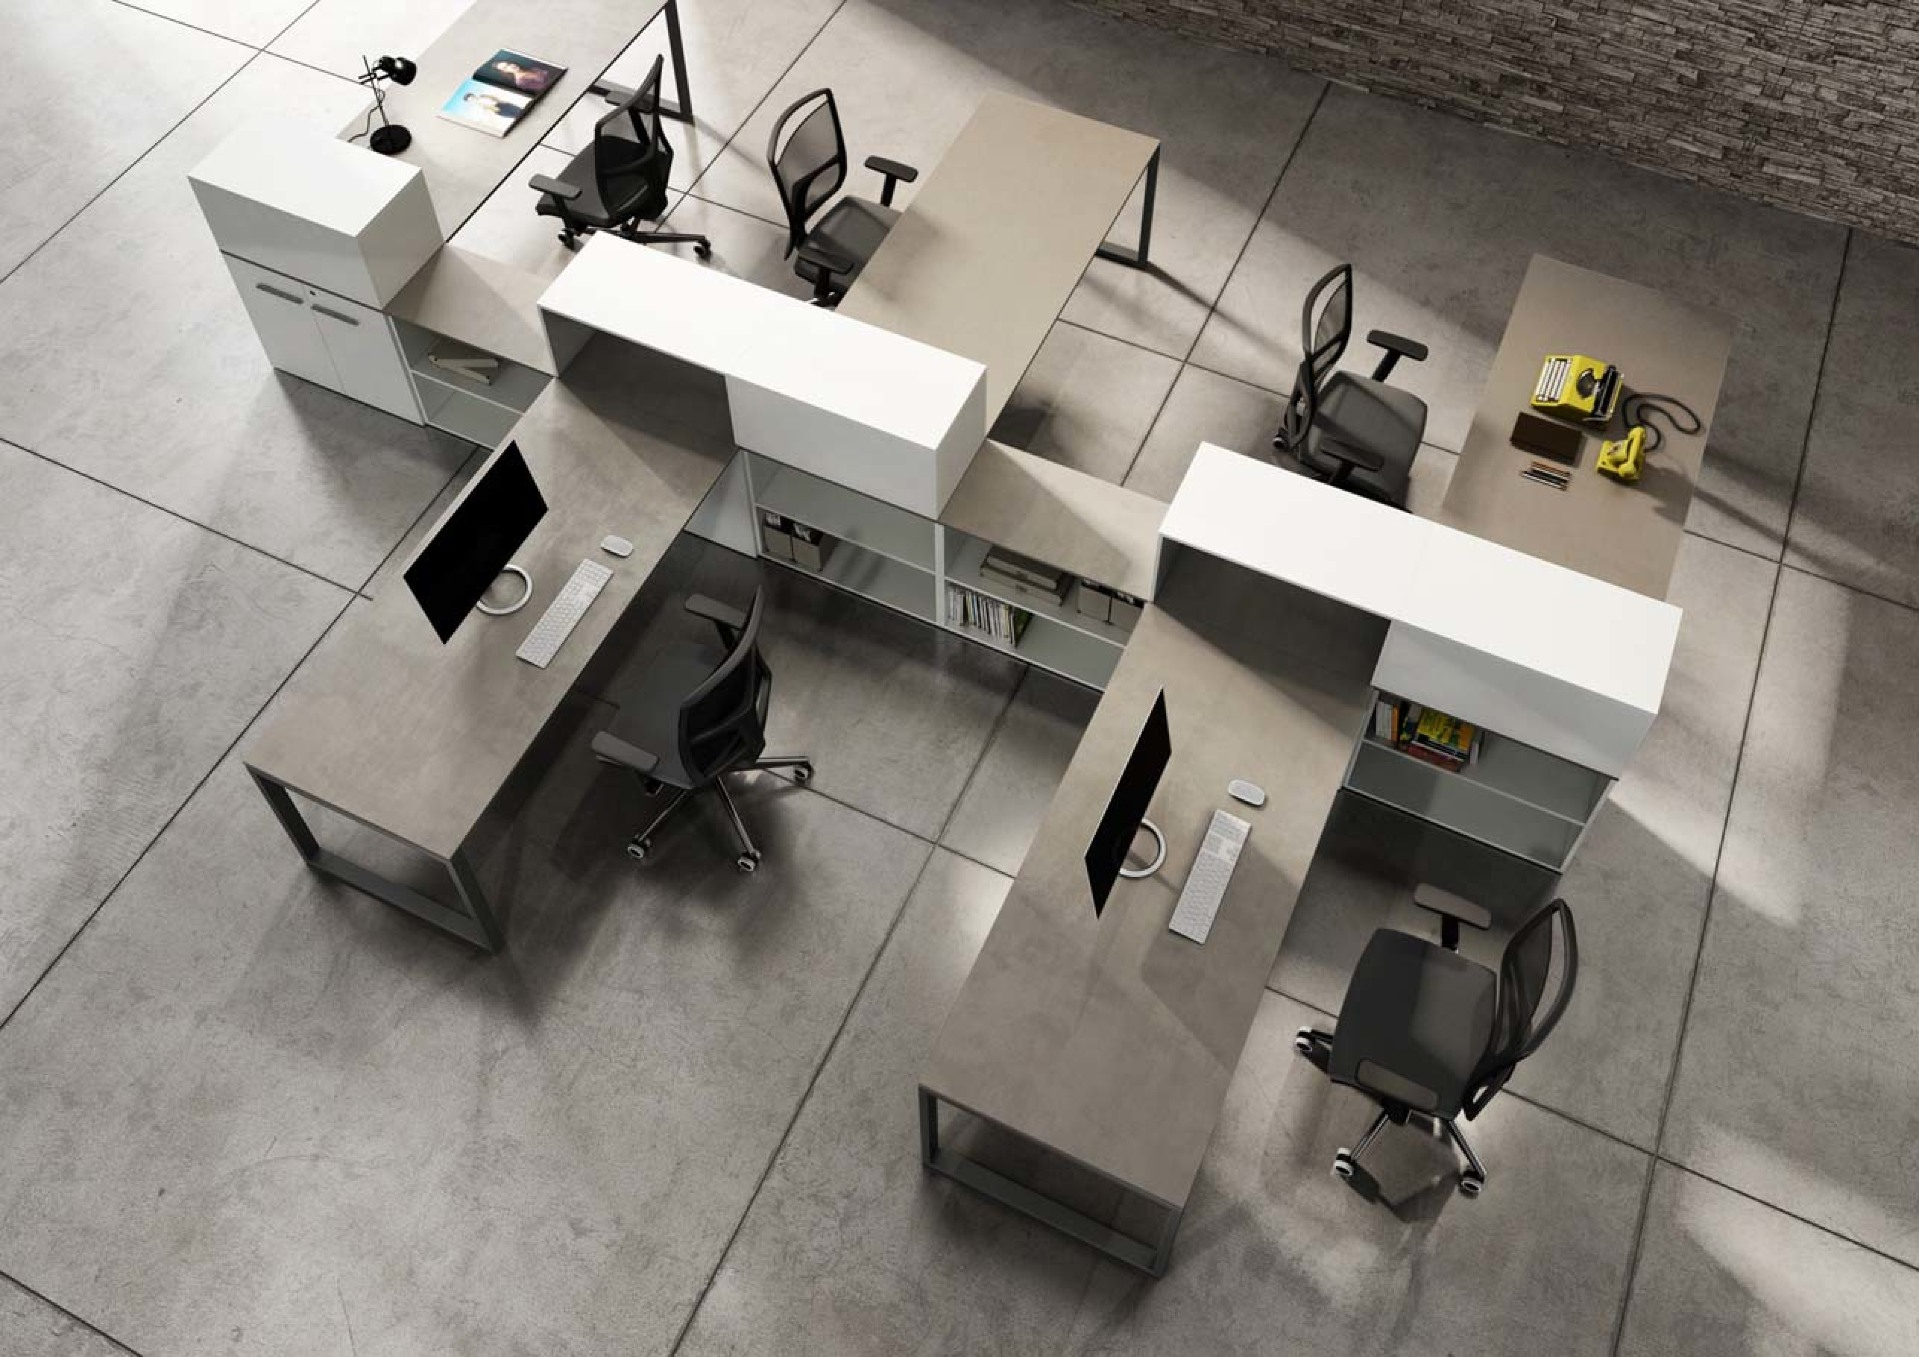 s2-operative-workstation-carrying-service-unit-01.jpg